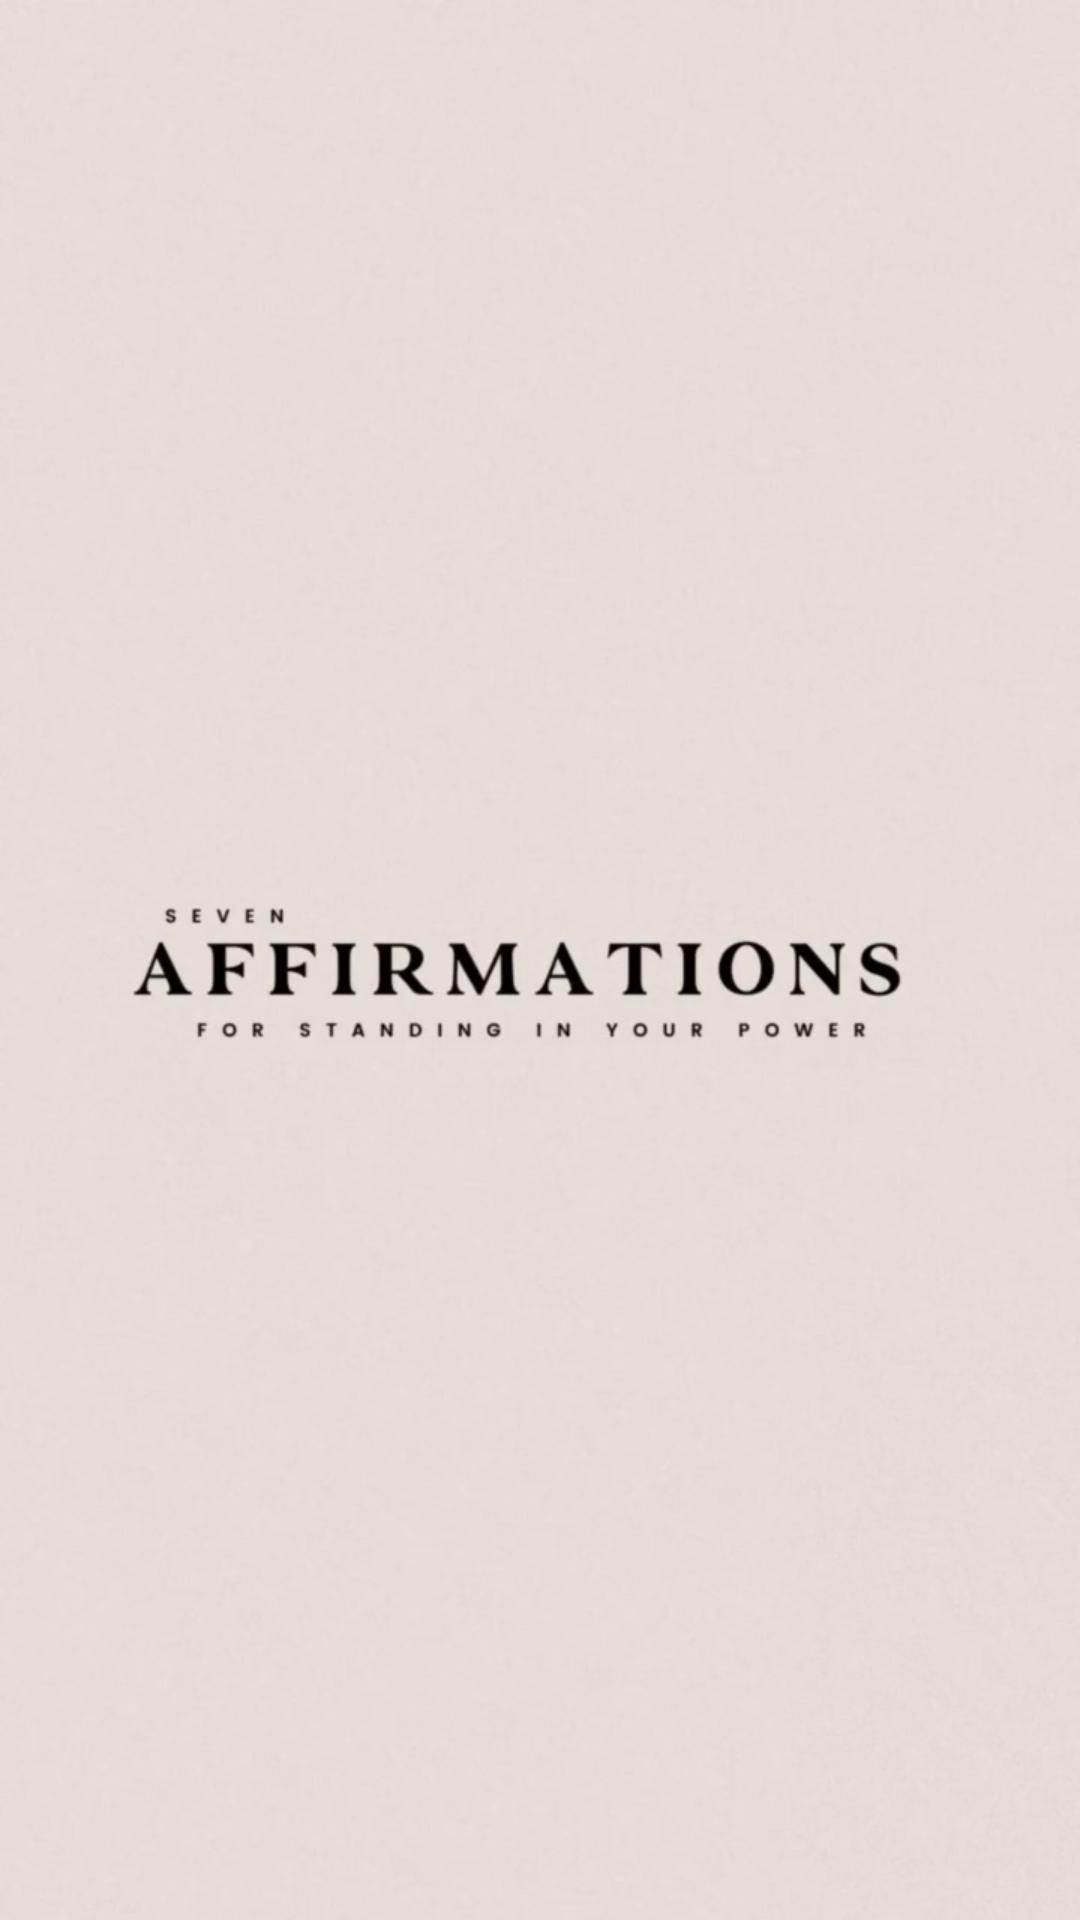 Seven Affirmations for Standing in Your Power. I hope this mini meditation brings you joy!